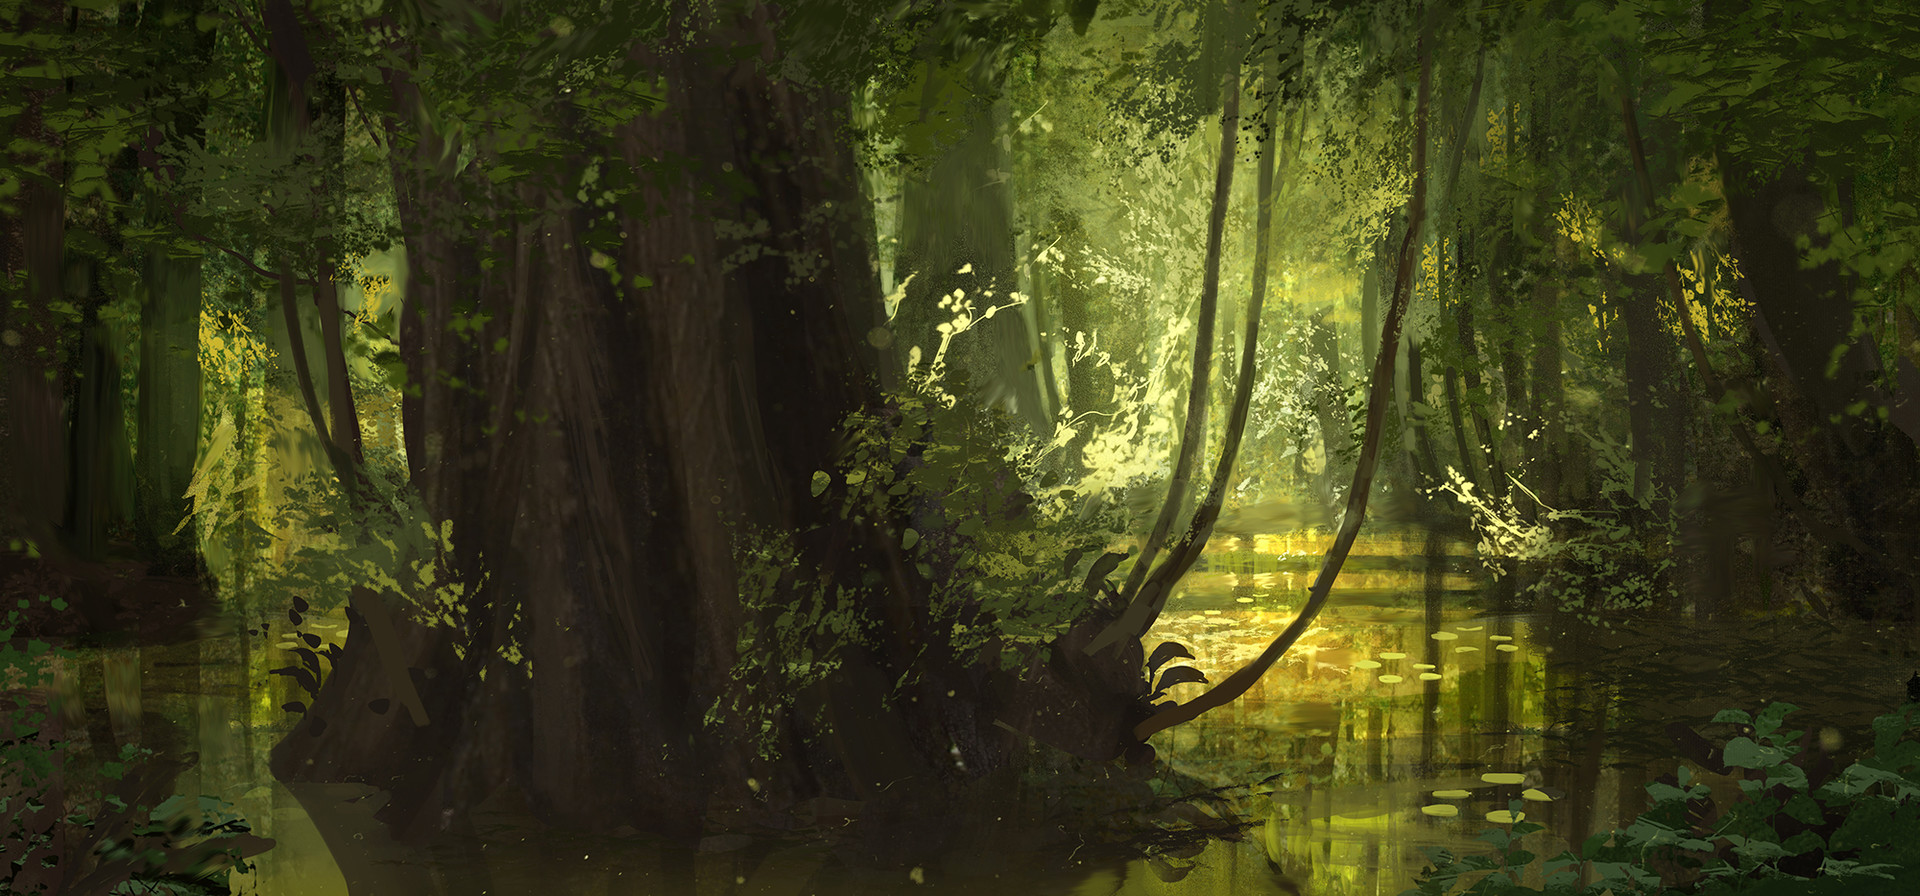 Bram sels jungle sketch bram sels